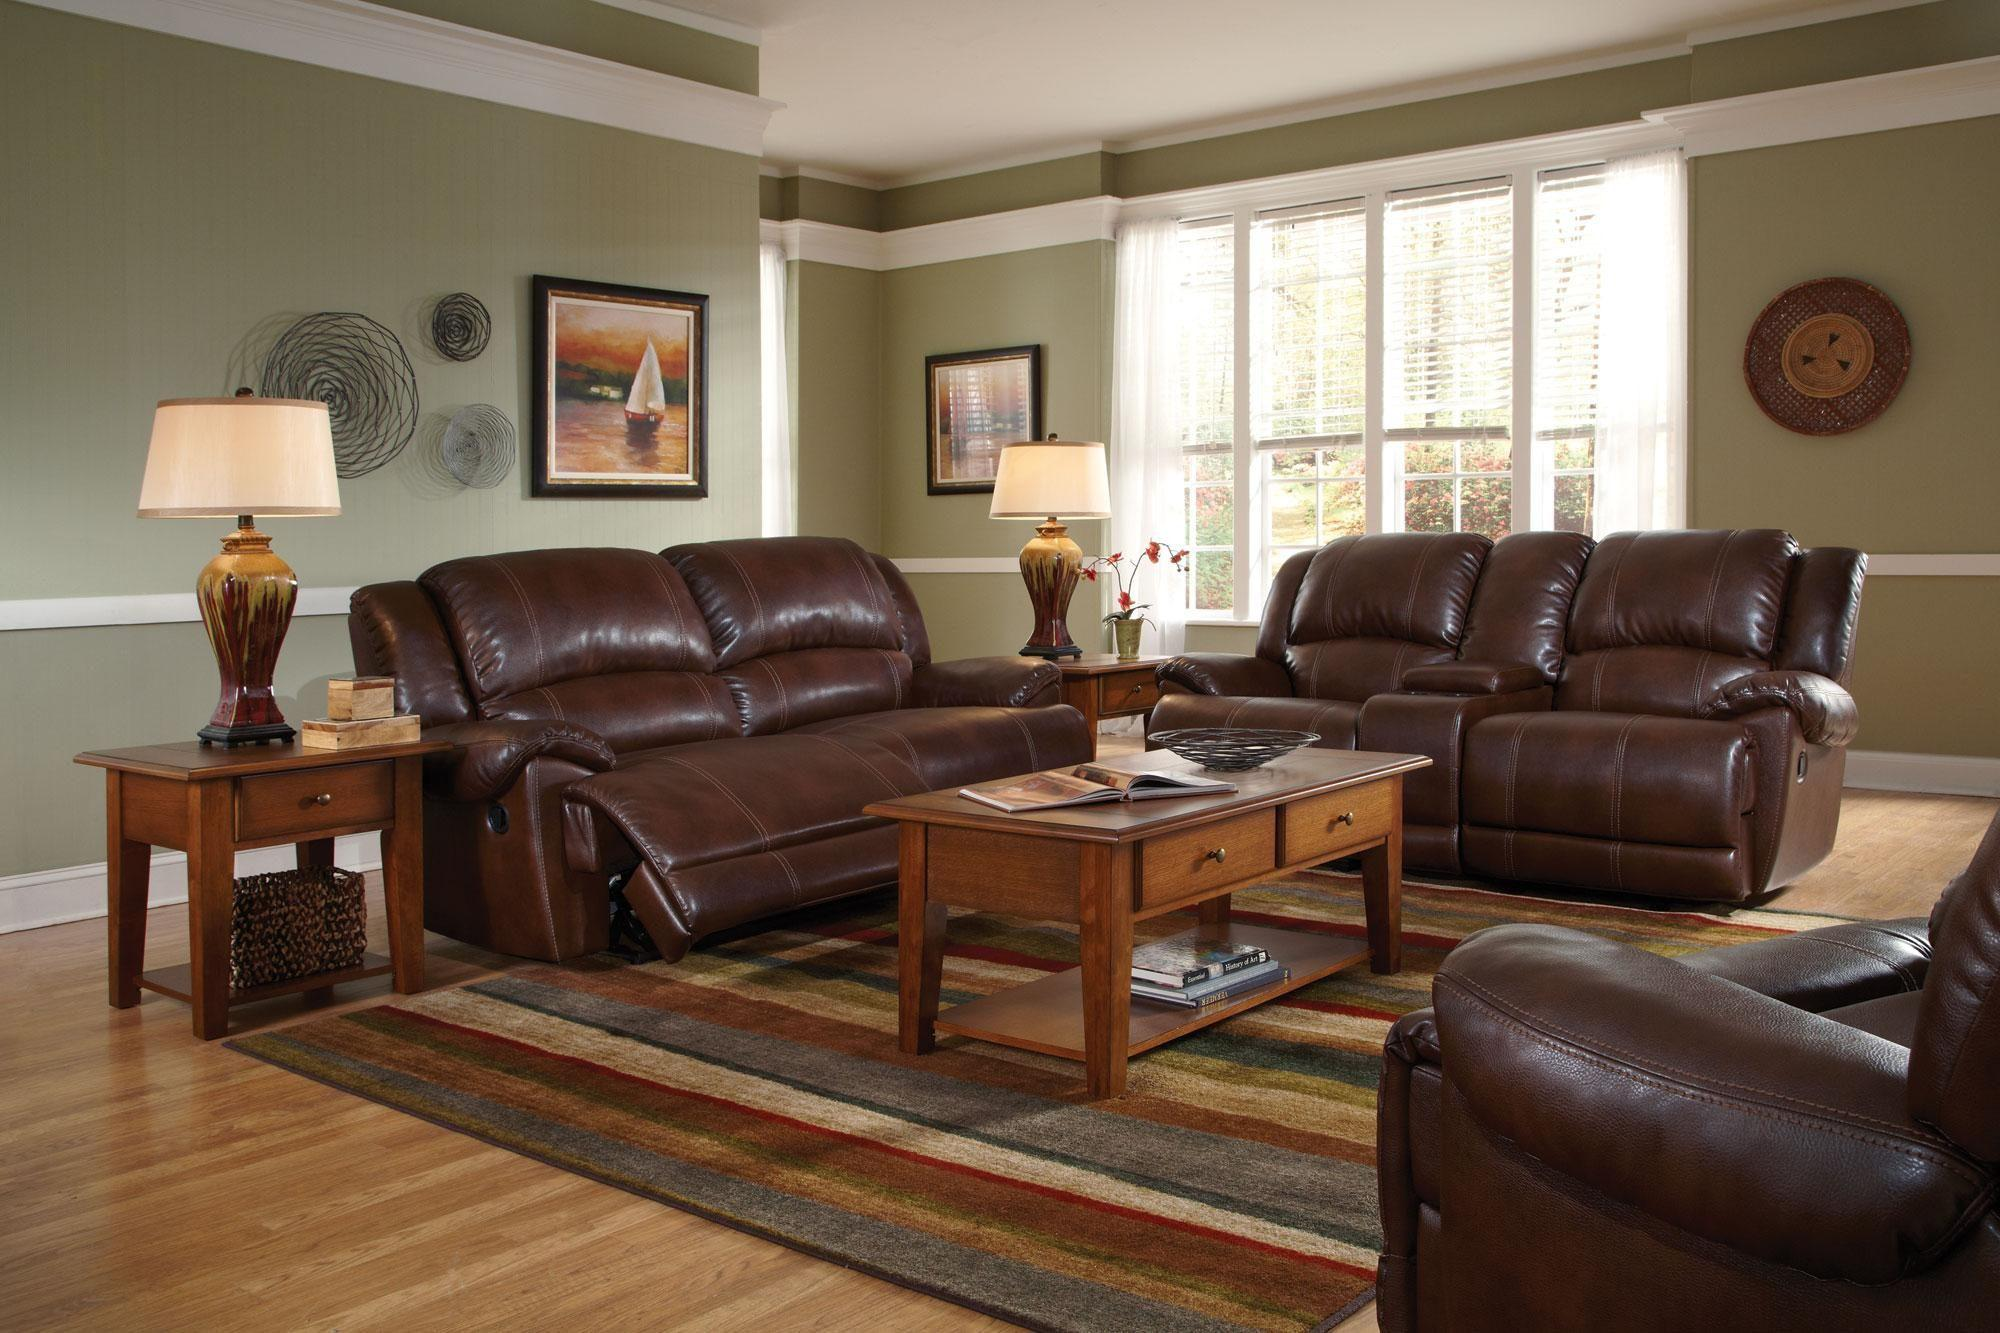 Image of: Living Room With Brown Furniture Style